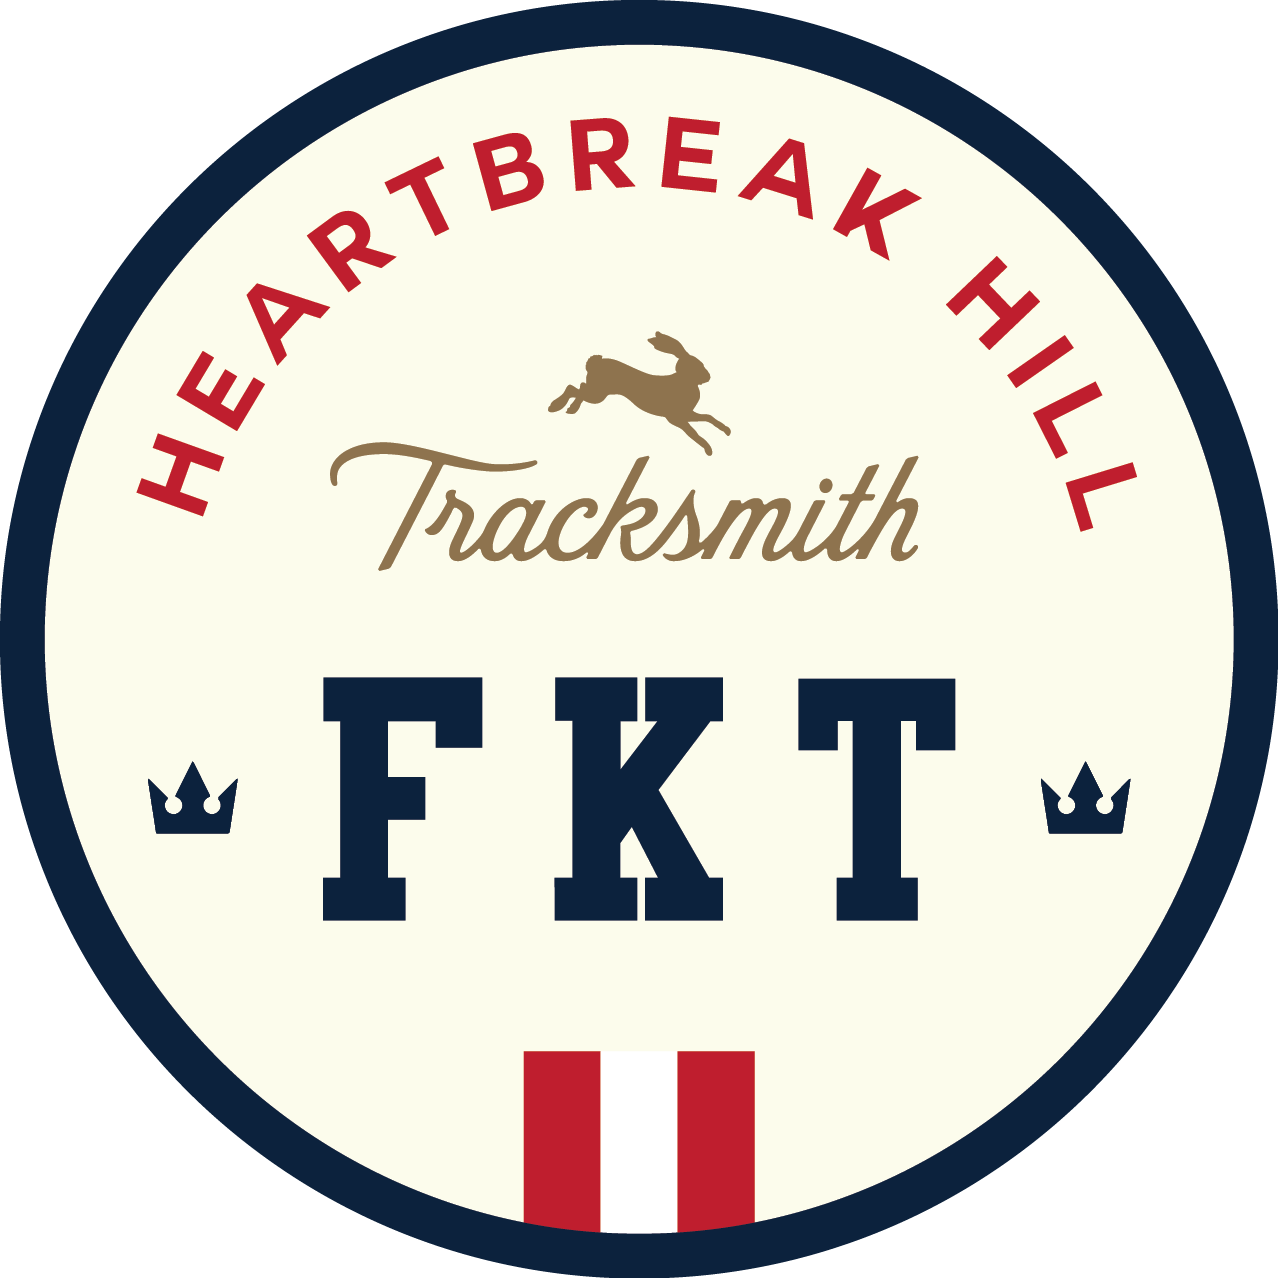 Tracksmith Heartbreak Hill FKT logo